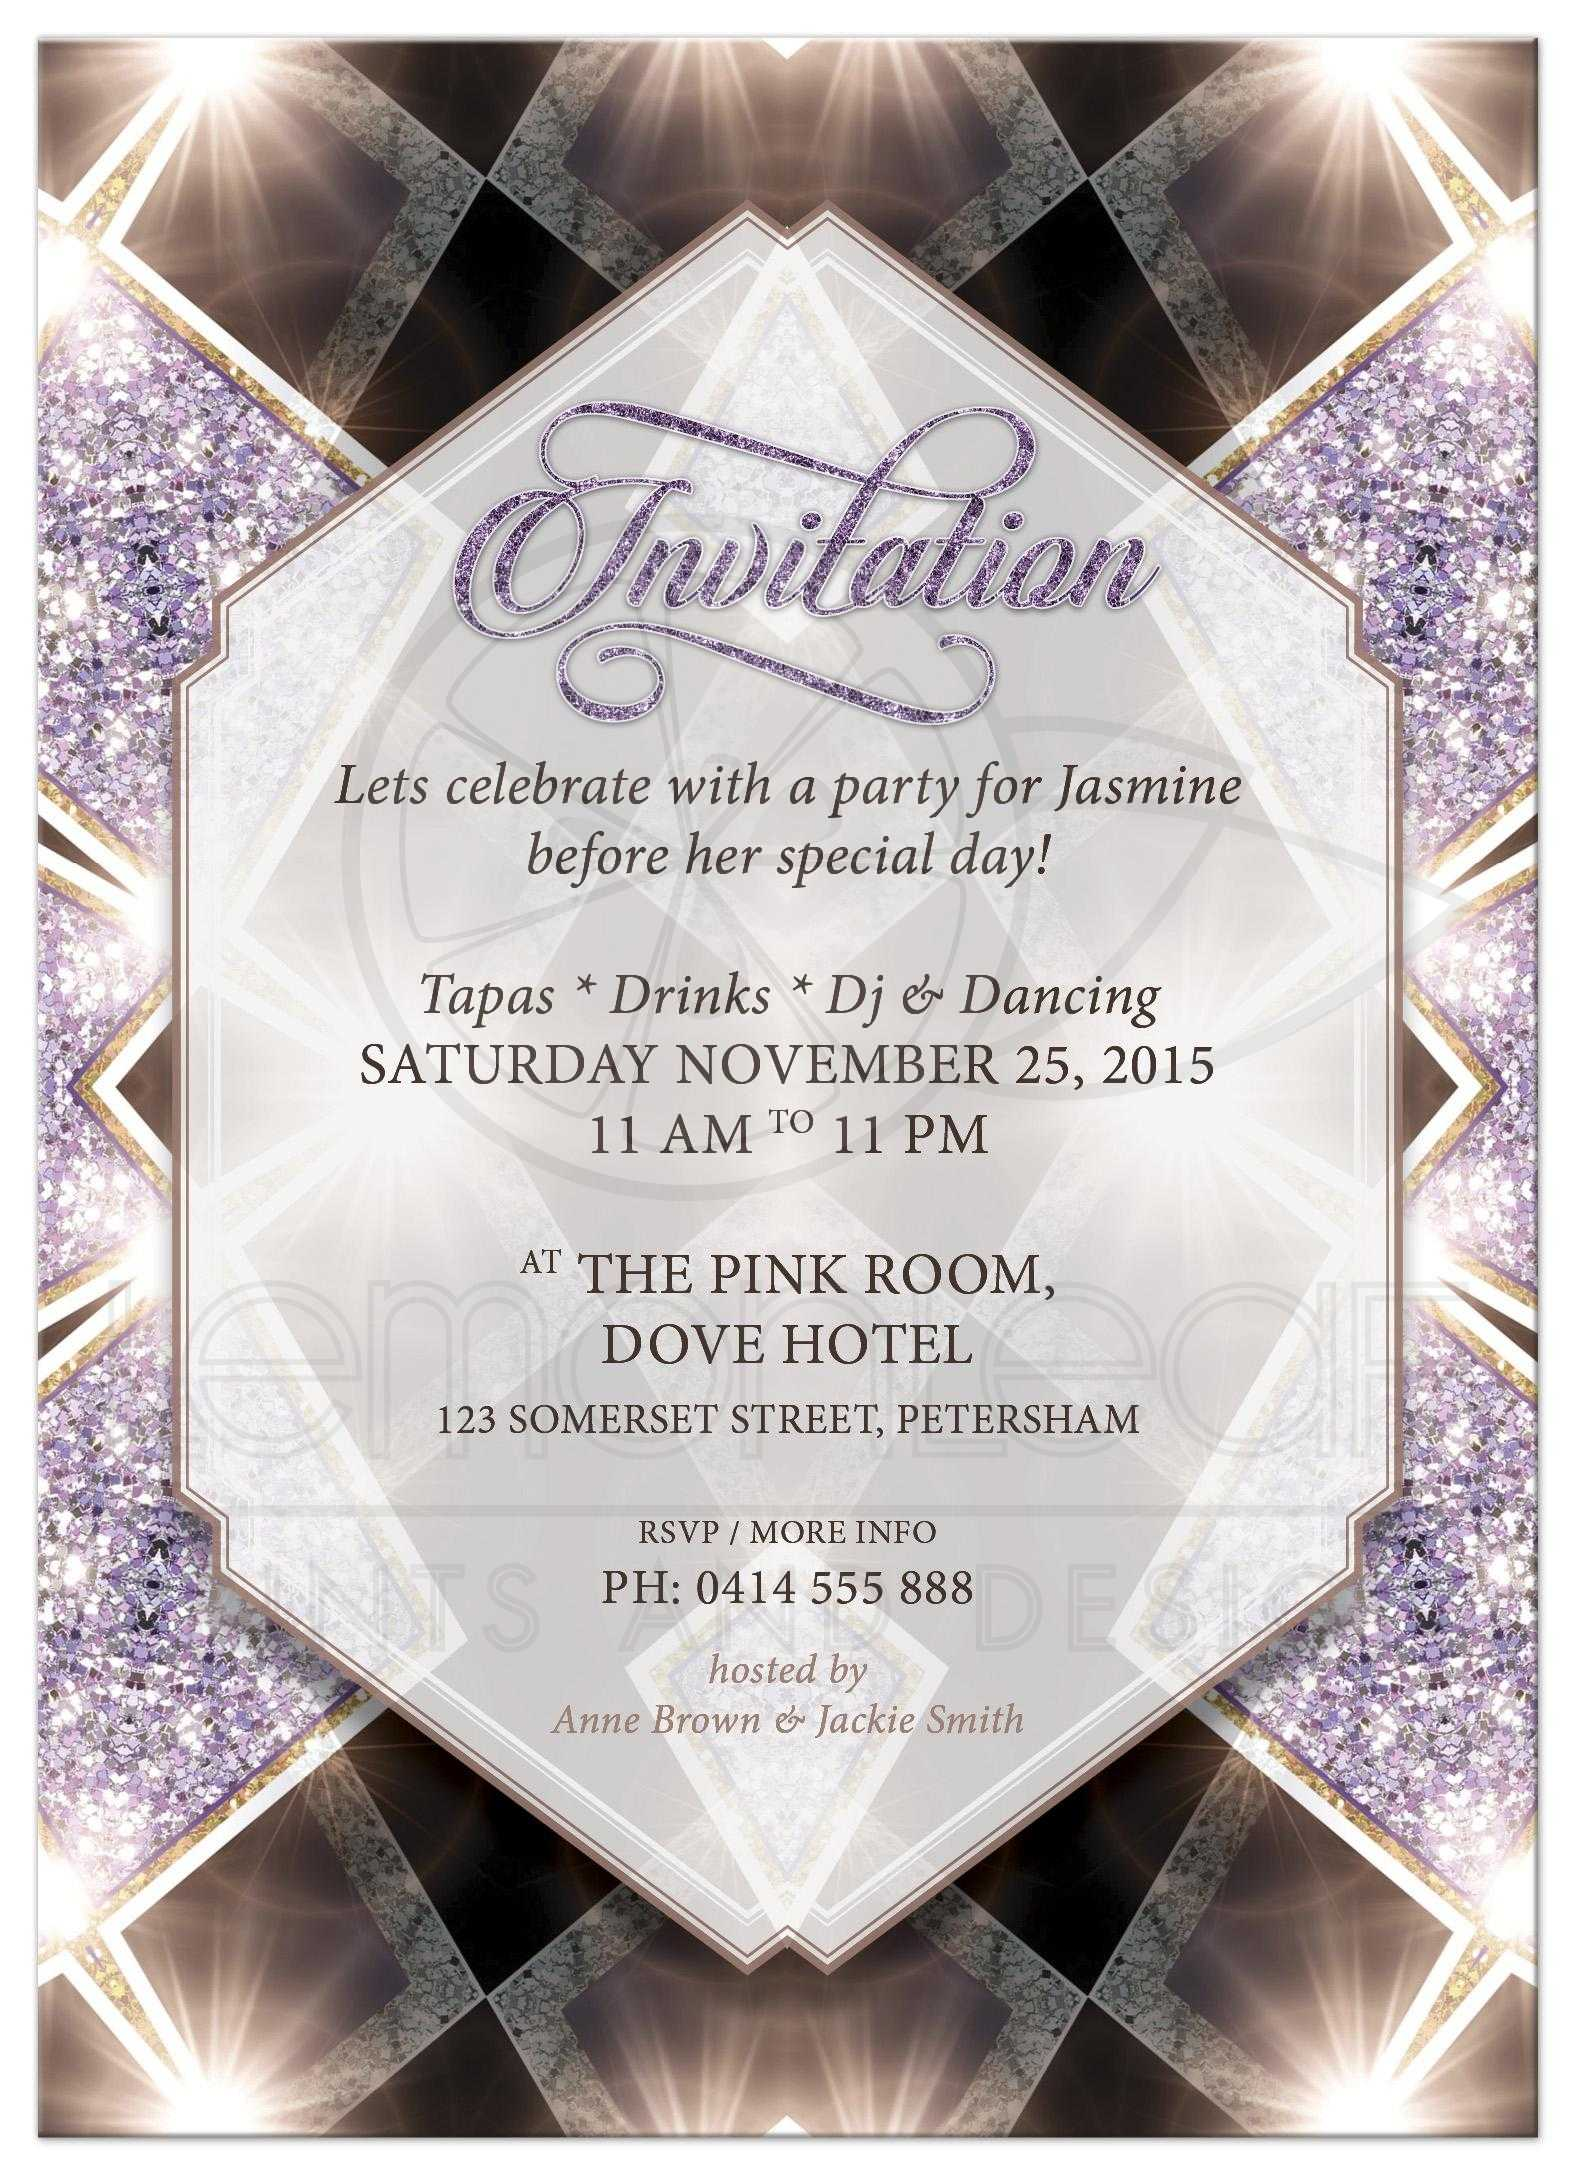 Purple art deco glitter bridal shower invitation purple sparkly art deco glam bridal shower invite filmwisefo